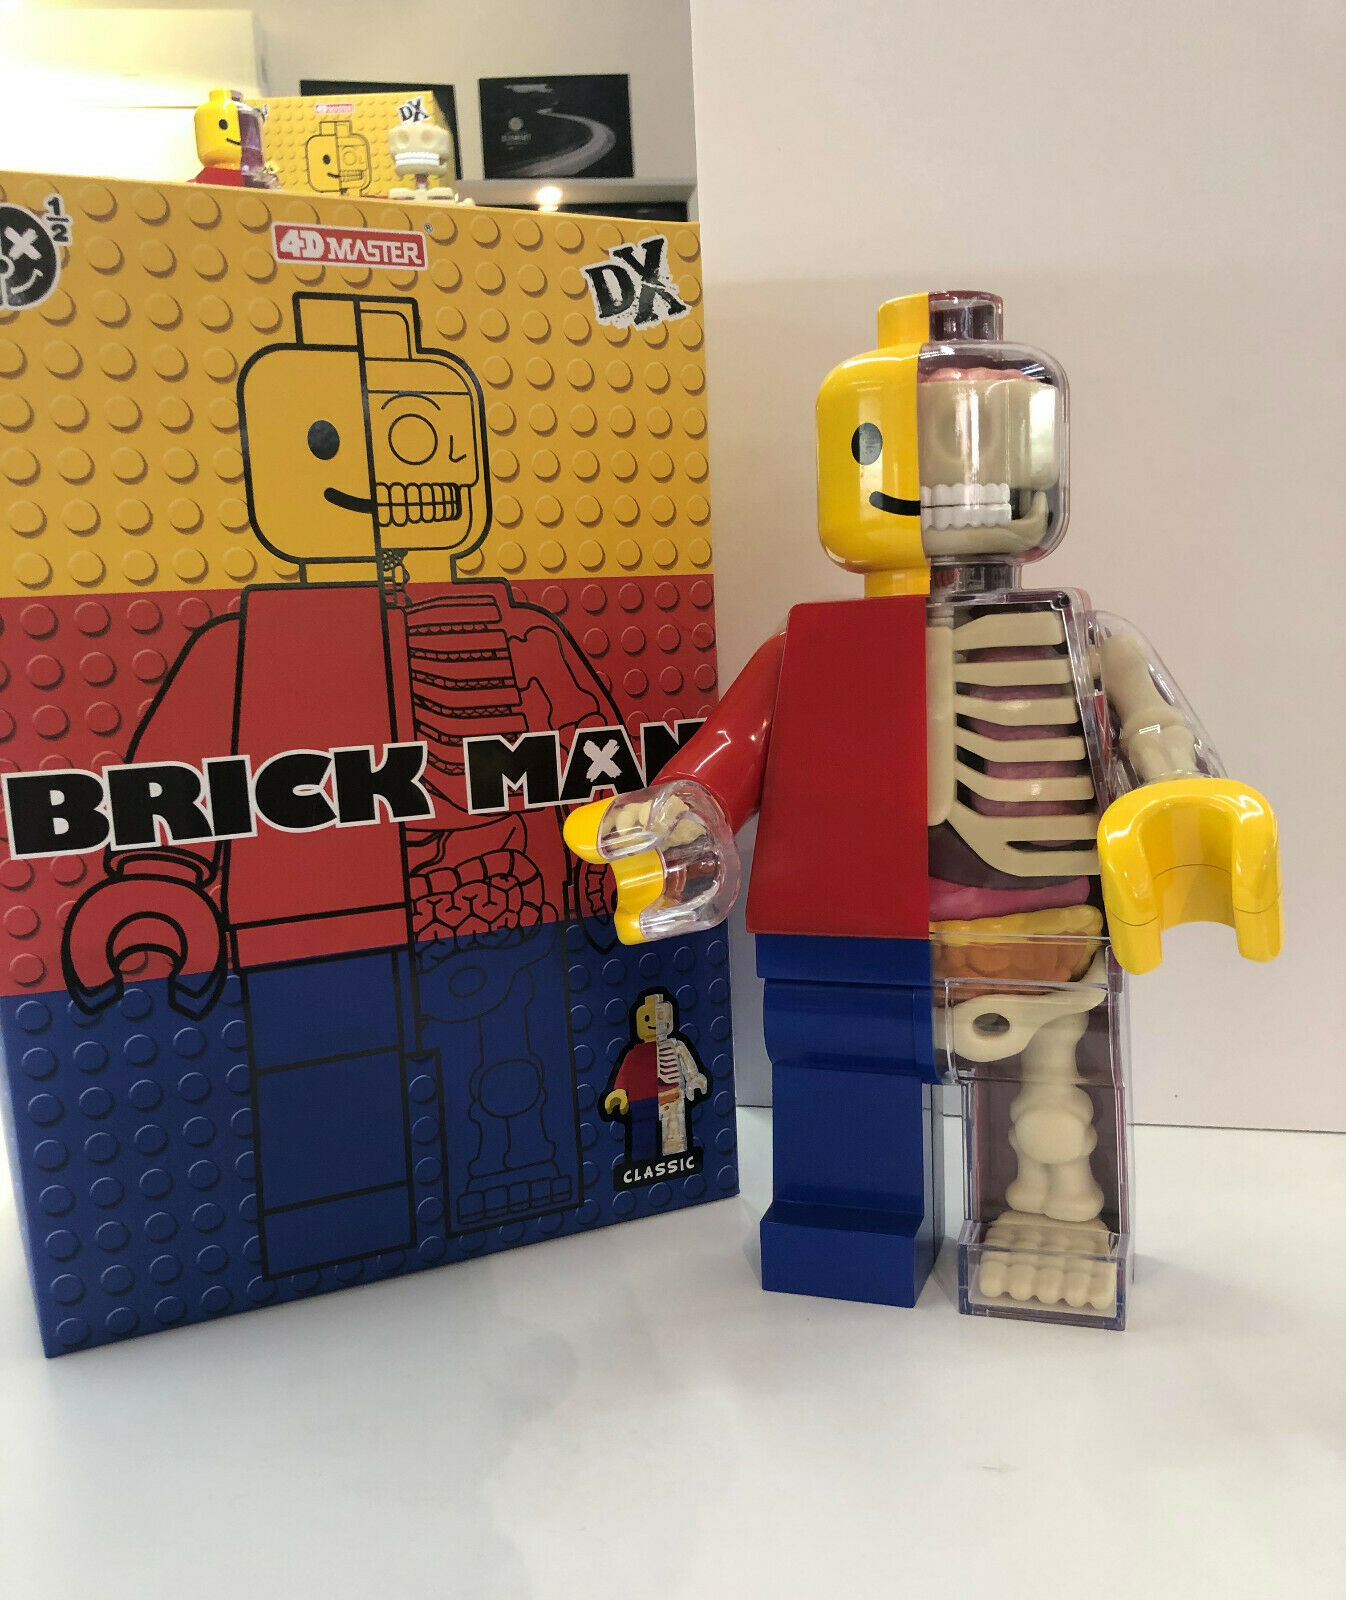 Brick Man classic 30cm 4D Master Jason freeny toys action figures 36 pezzi